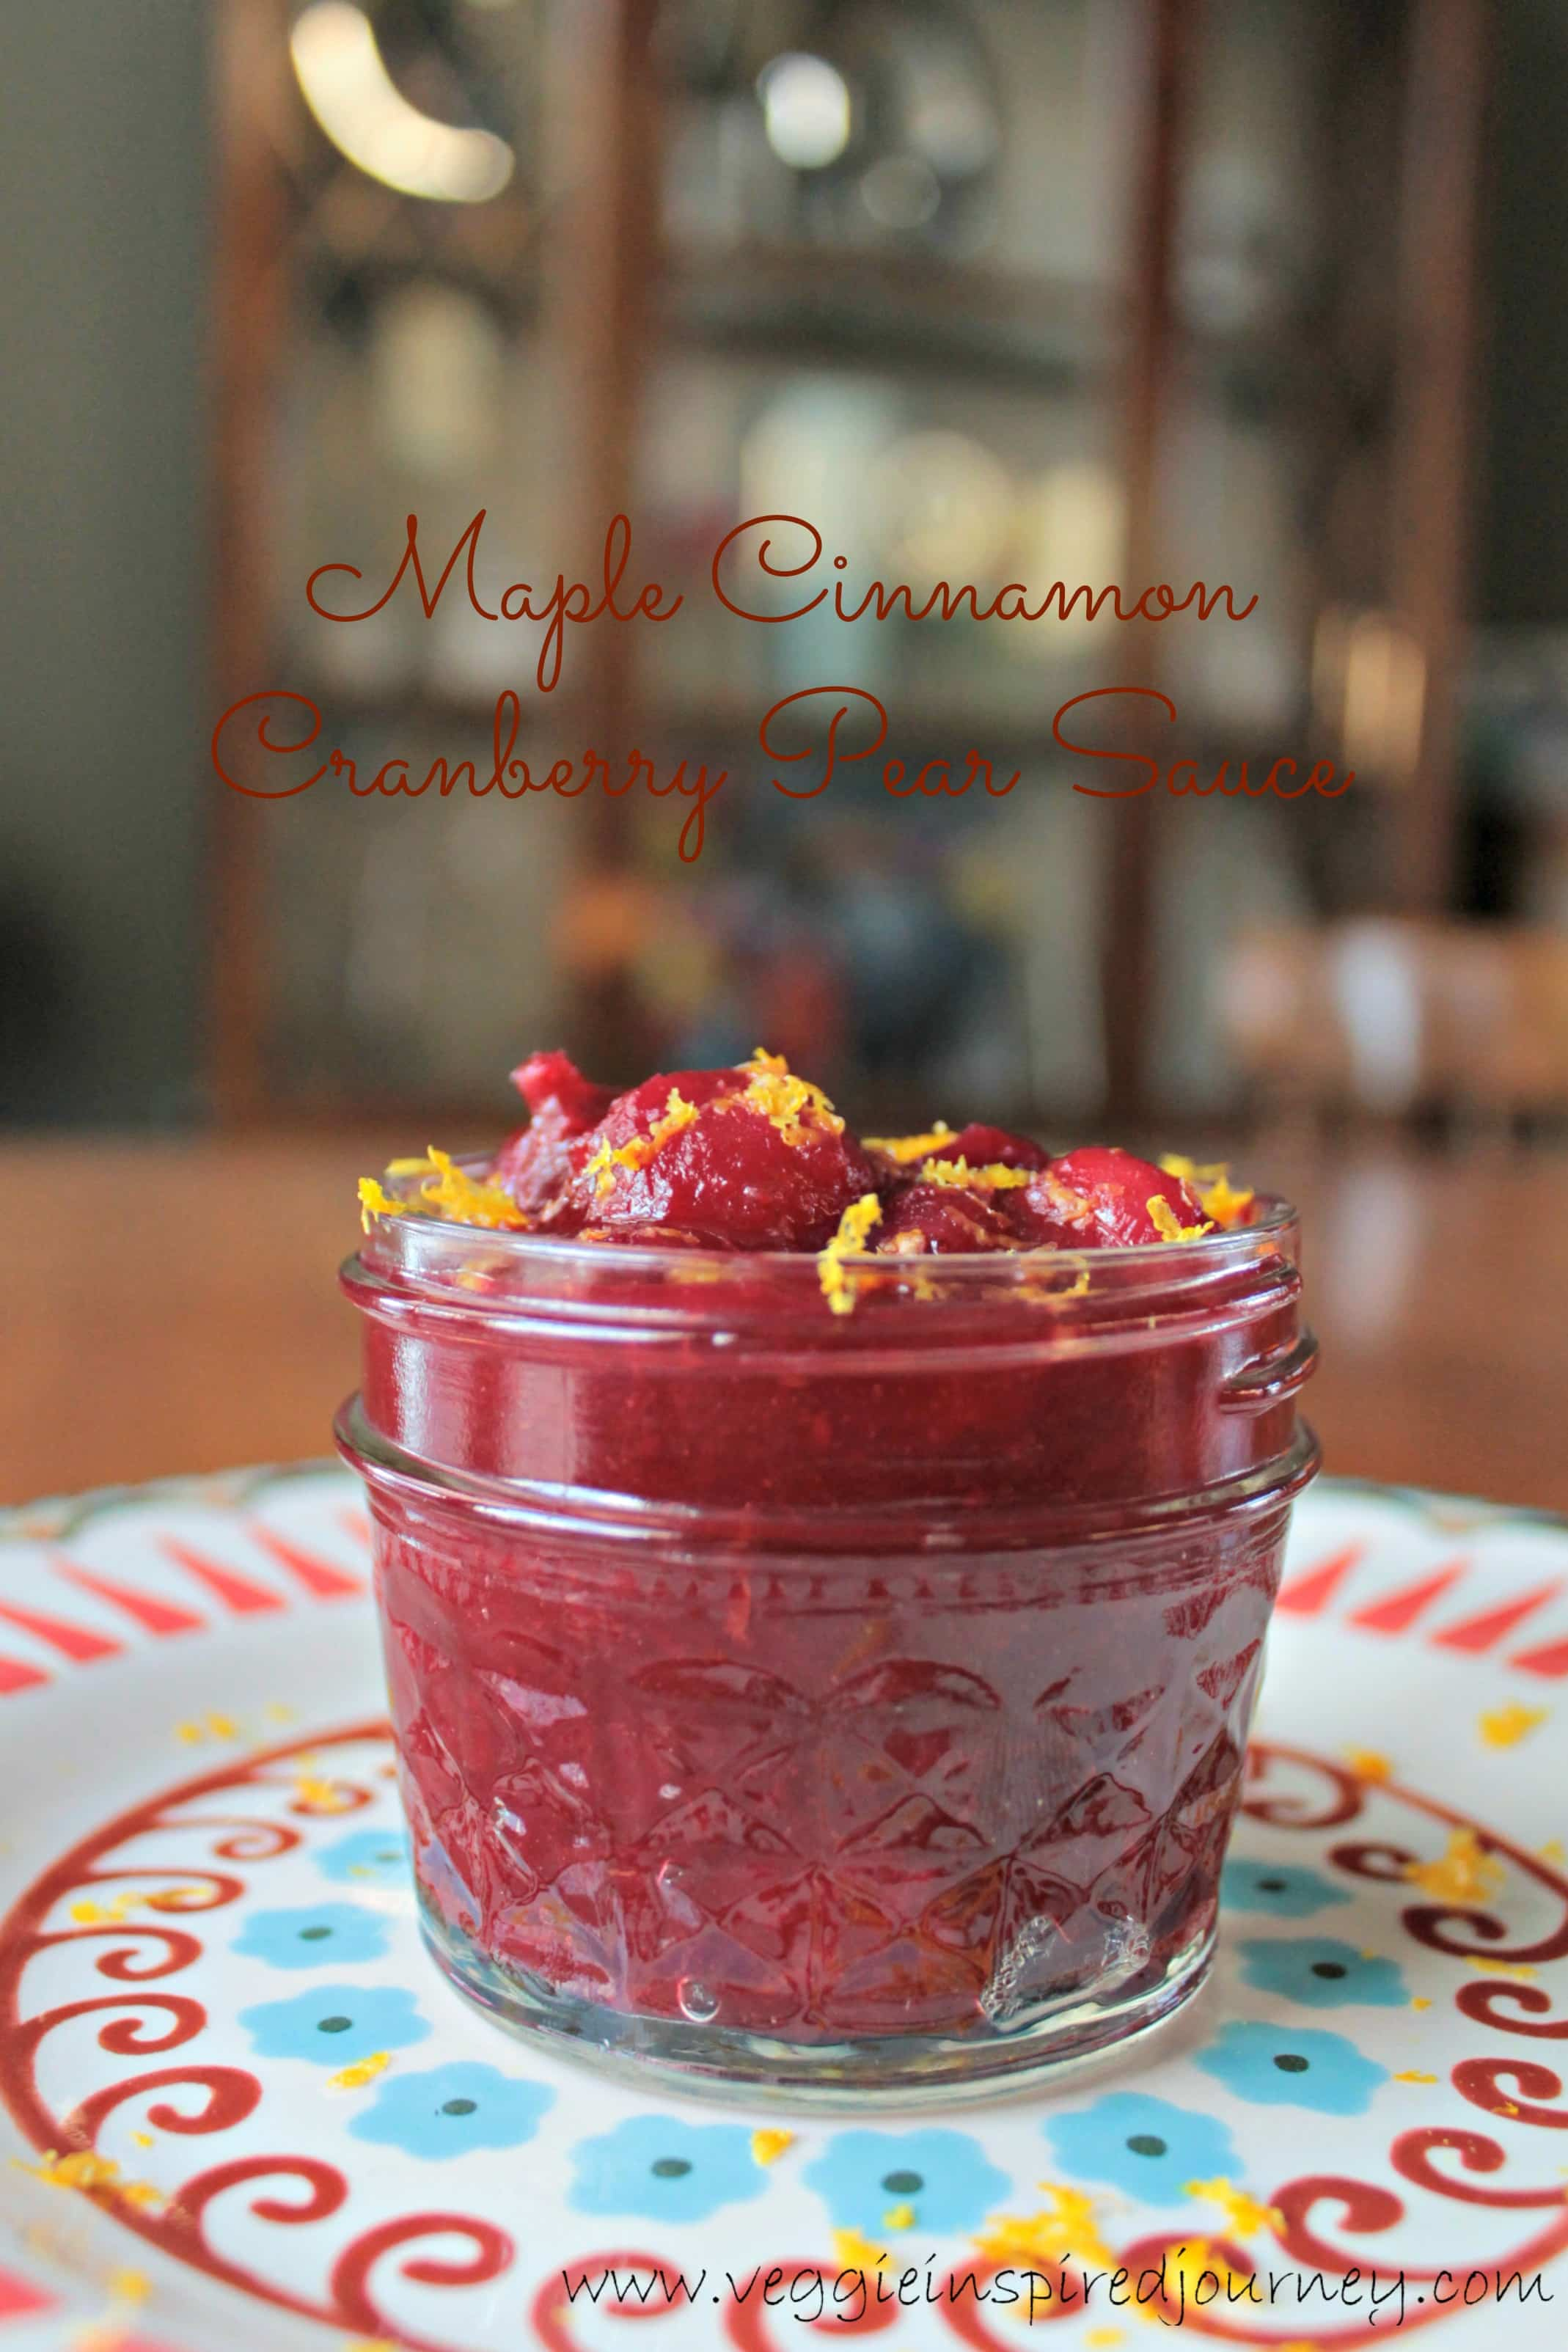 Maple Cinnamon Cranberry Pear Sauce ~ Veggie Inspired